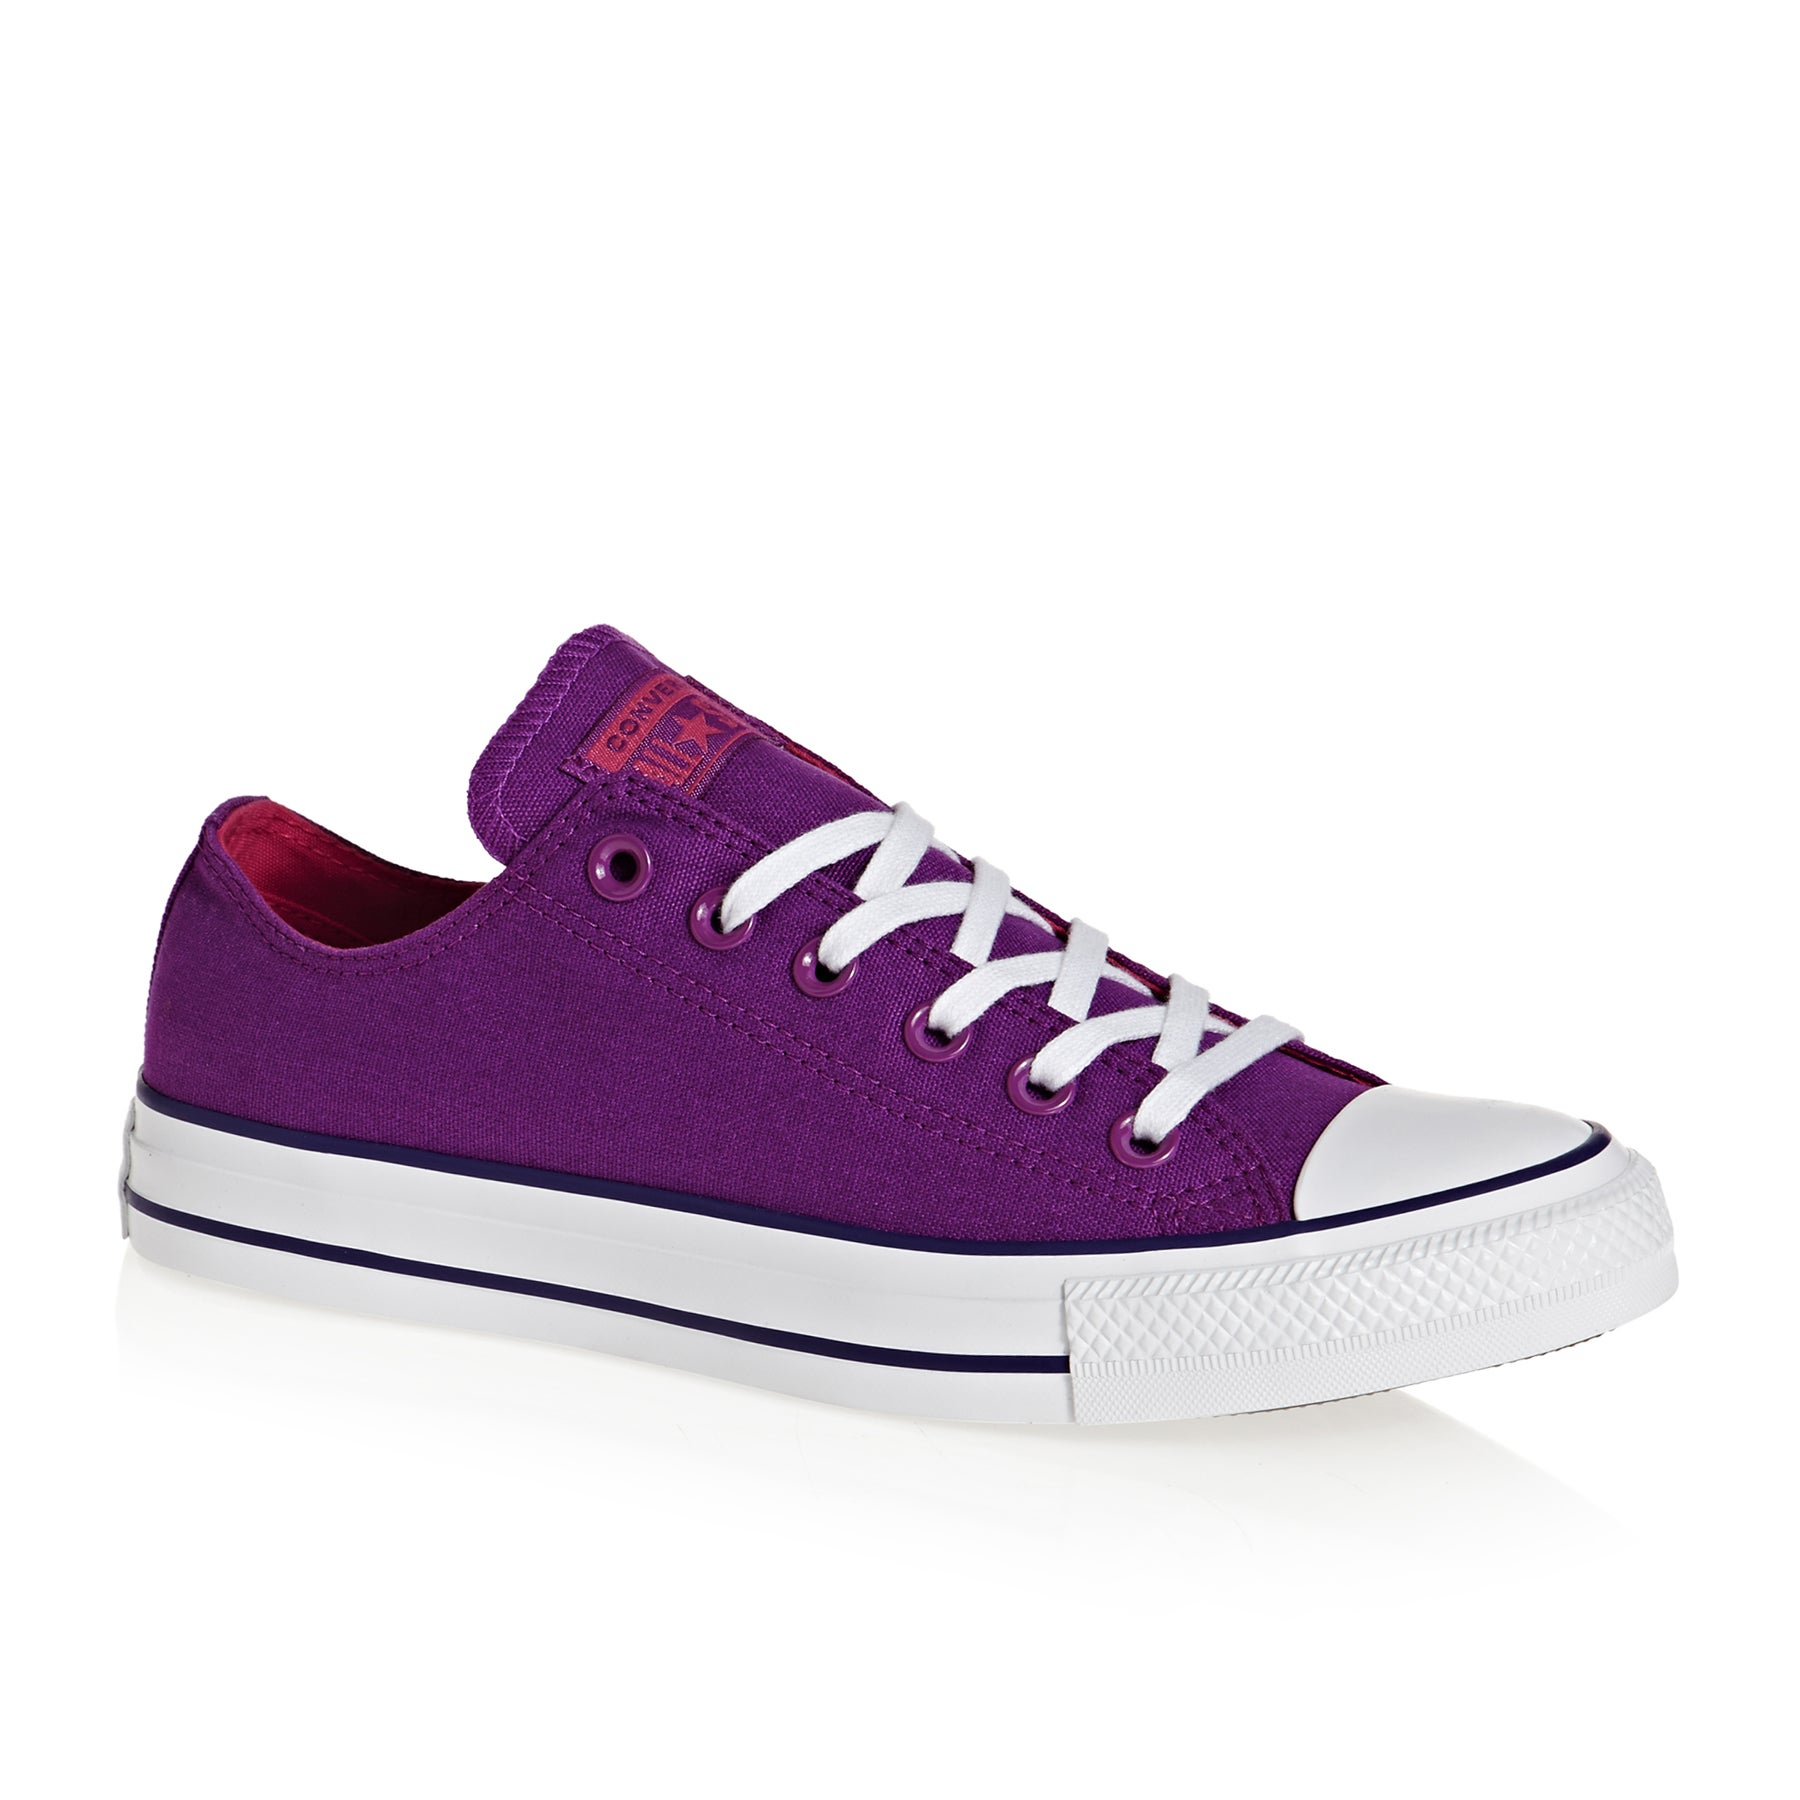 Converse Chuck Taylor All Stars OX Shoes - Icon Violet Pink Pop White